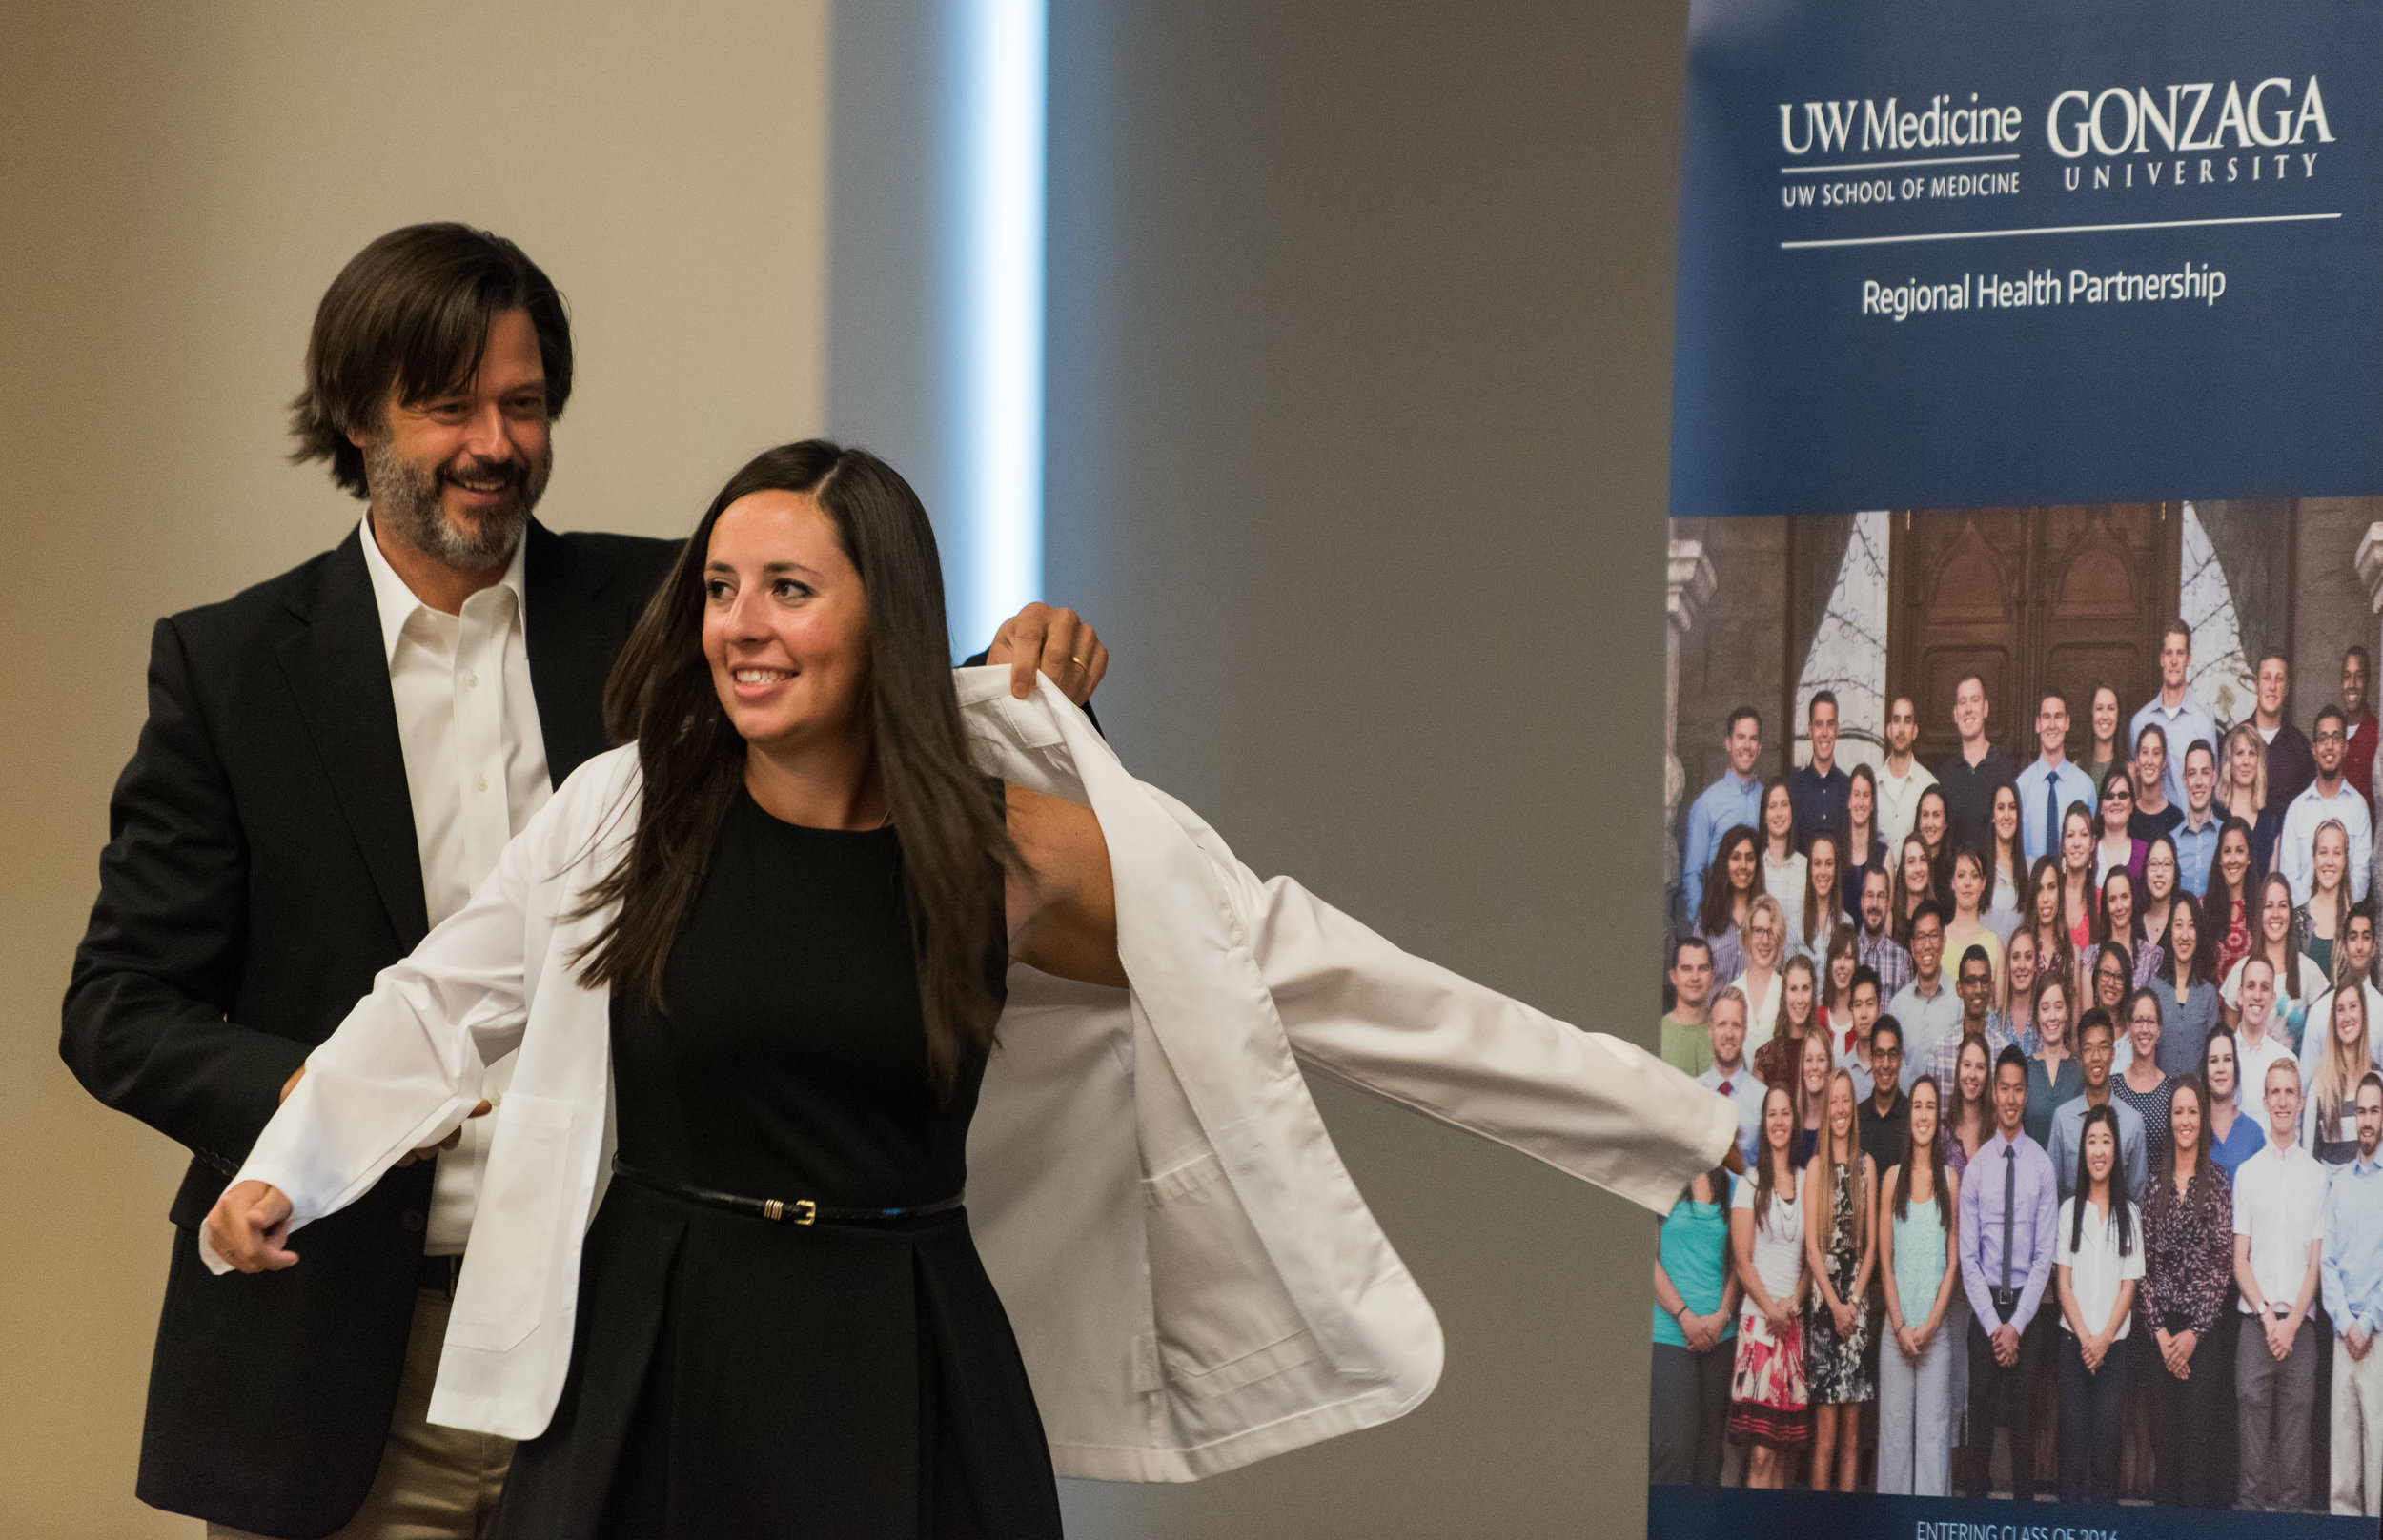 """A Gonzaga medical student receives her coat at the University's """"white coat"""" ceremony"""